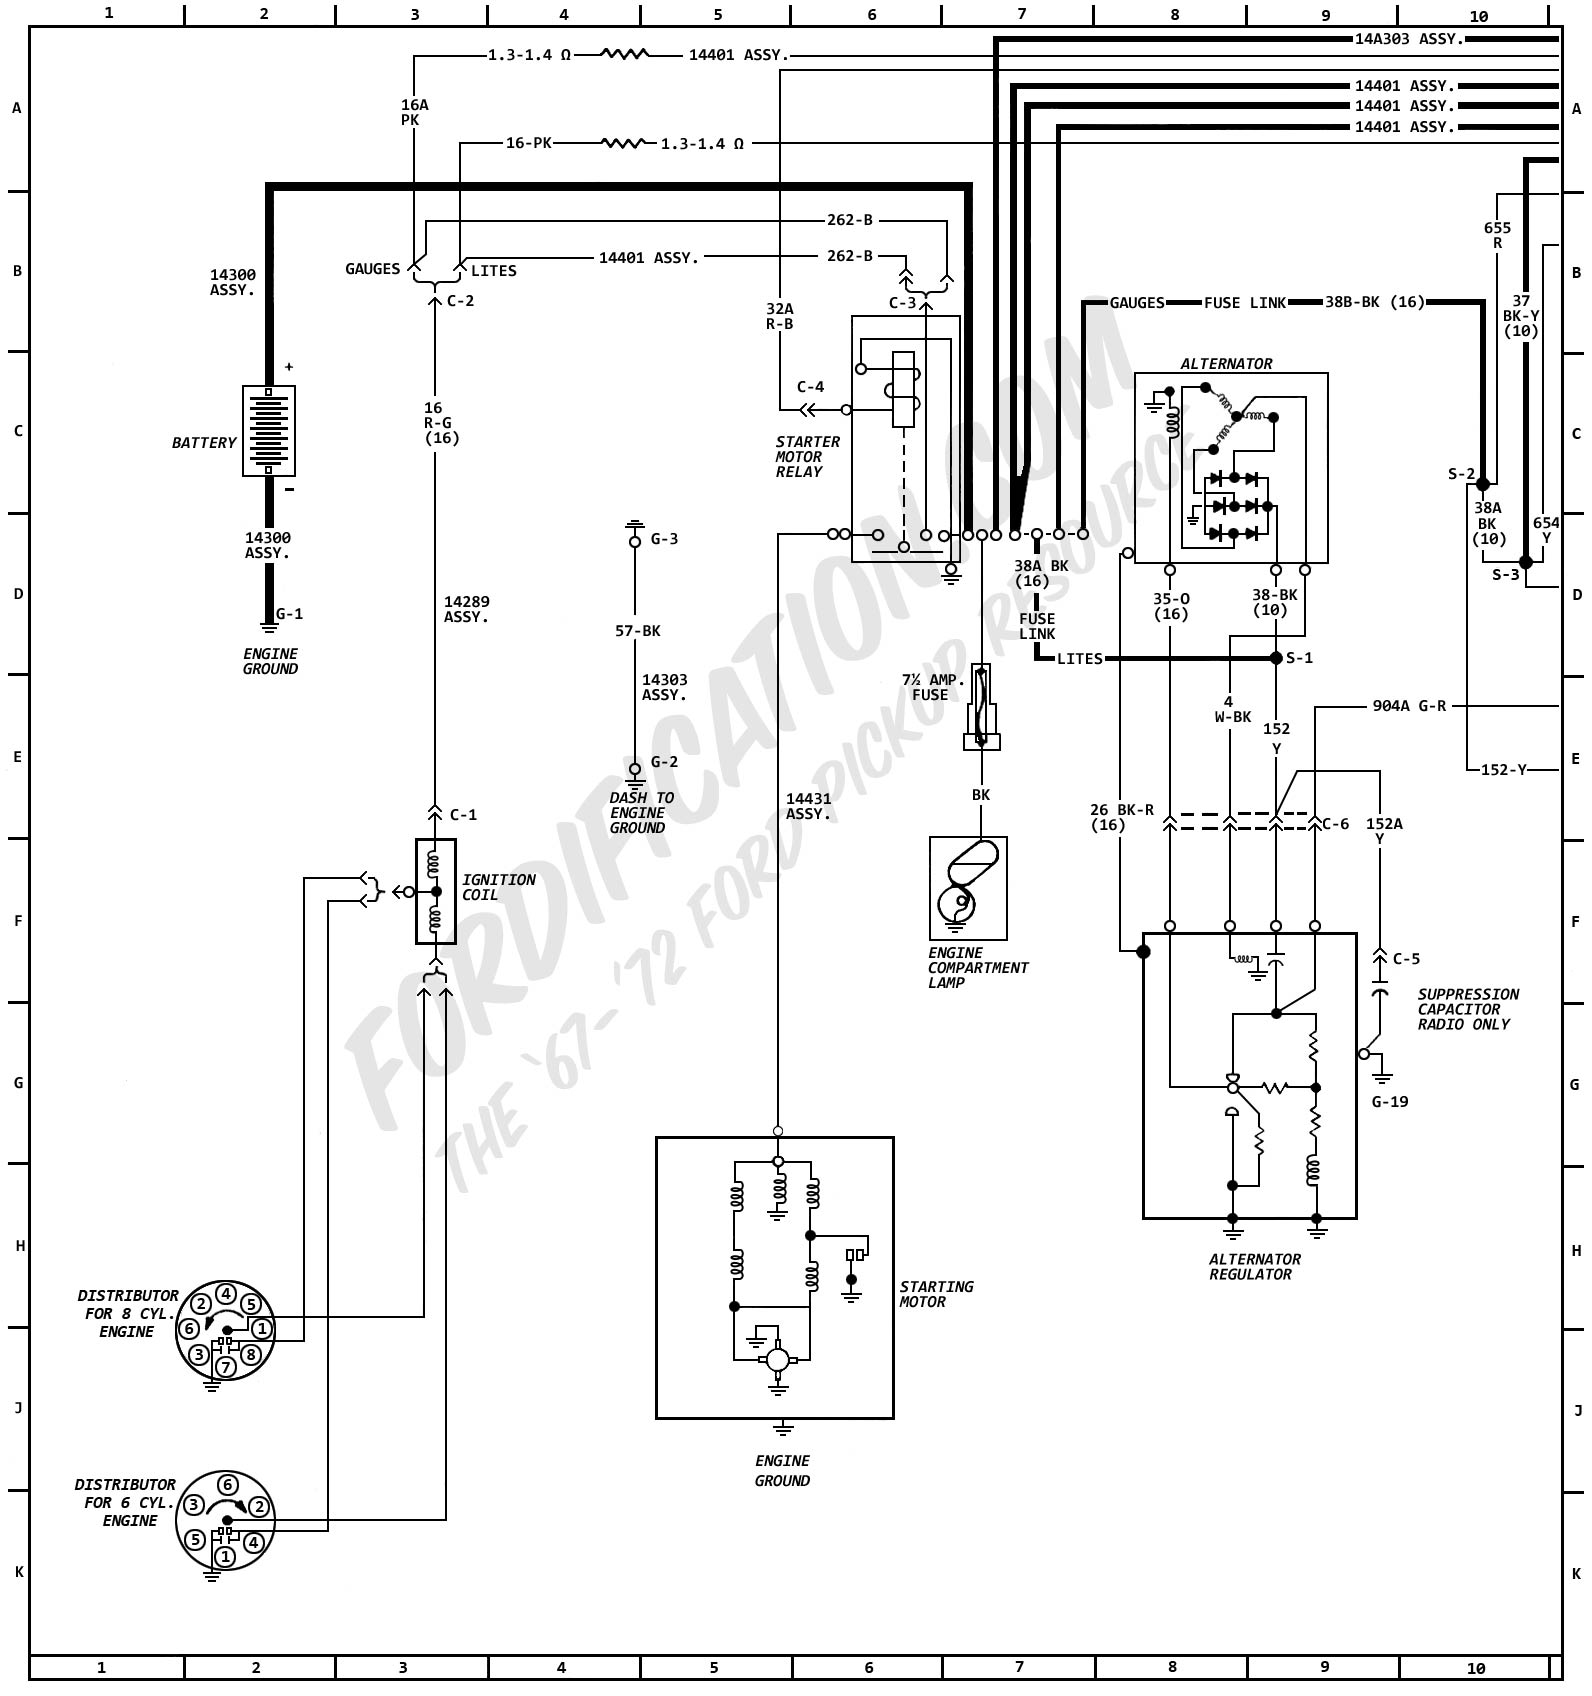 F250 Ignition Wiring Basic Schematic Ford Diagram 1972 Truck Diagrams Fordification Com Coil